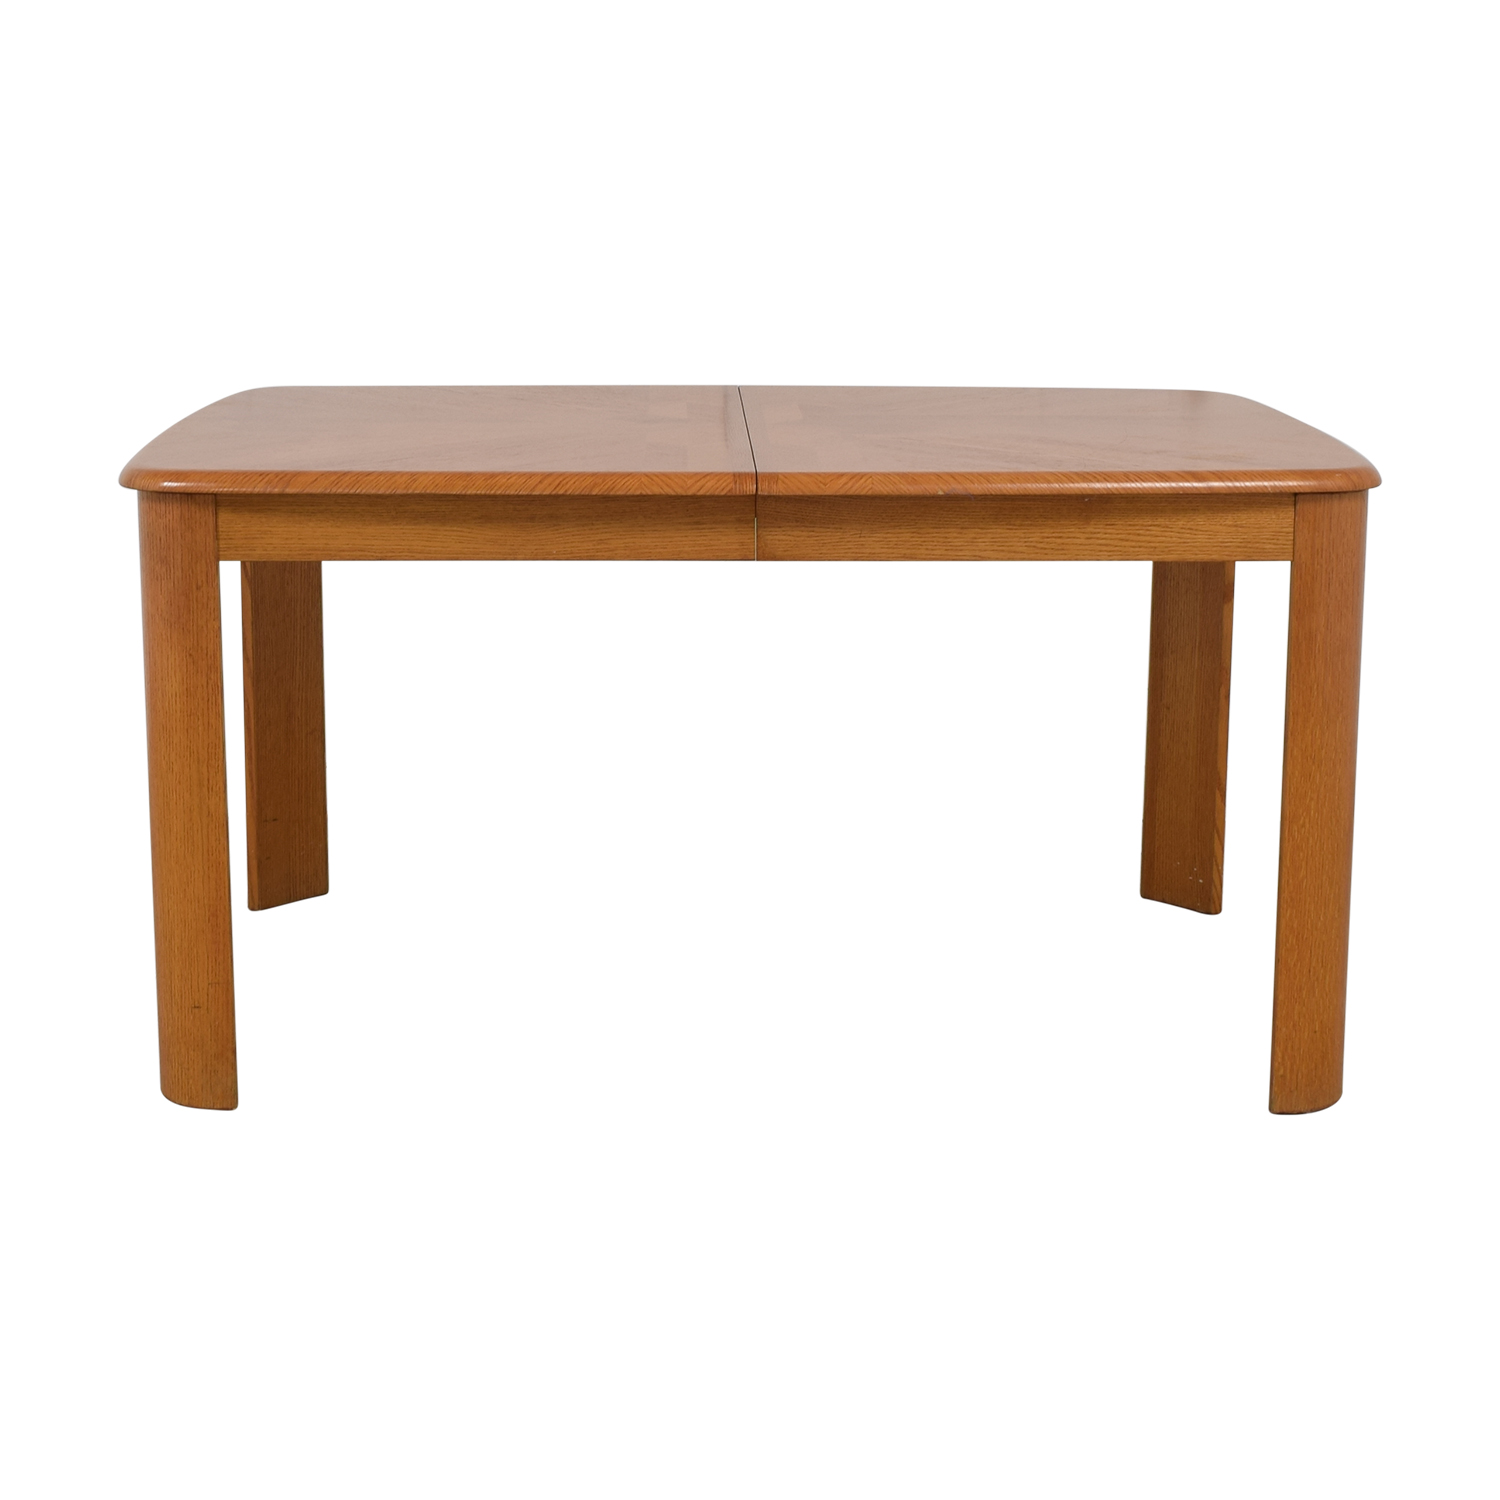 Raymour & Flanigan Wood Dining Table Raymour & Flanigan